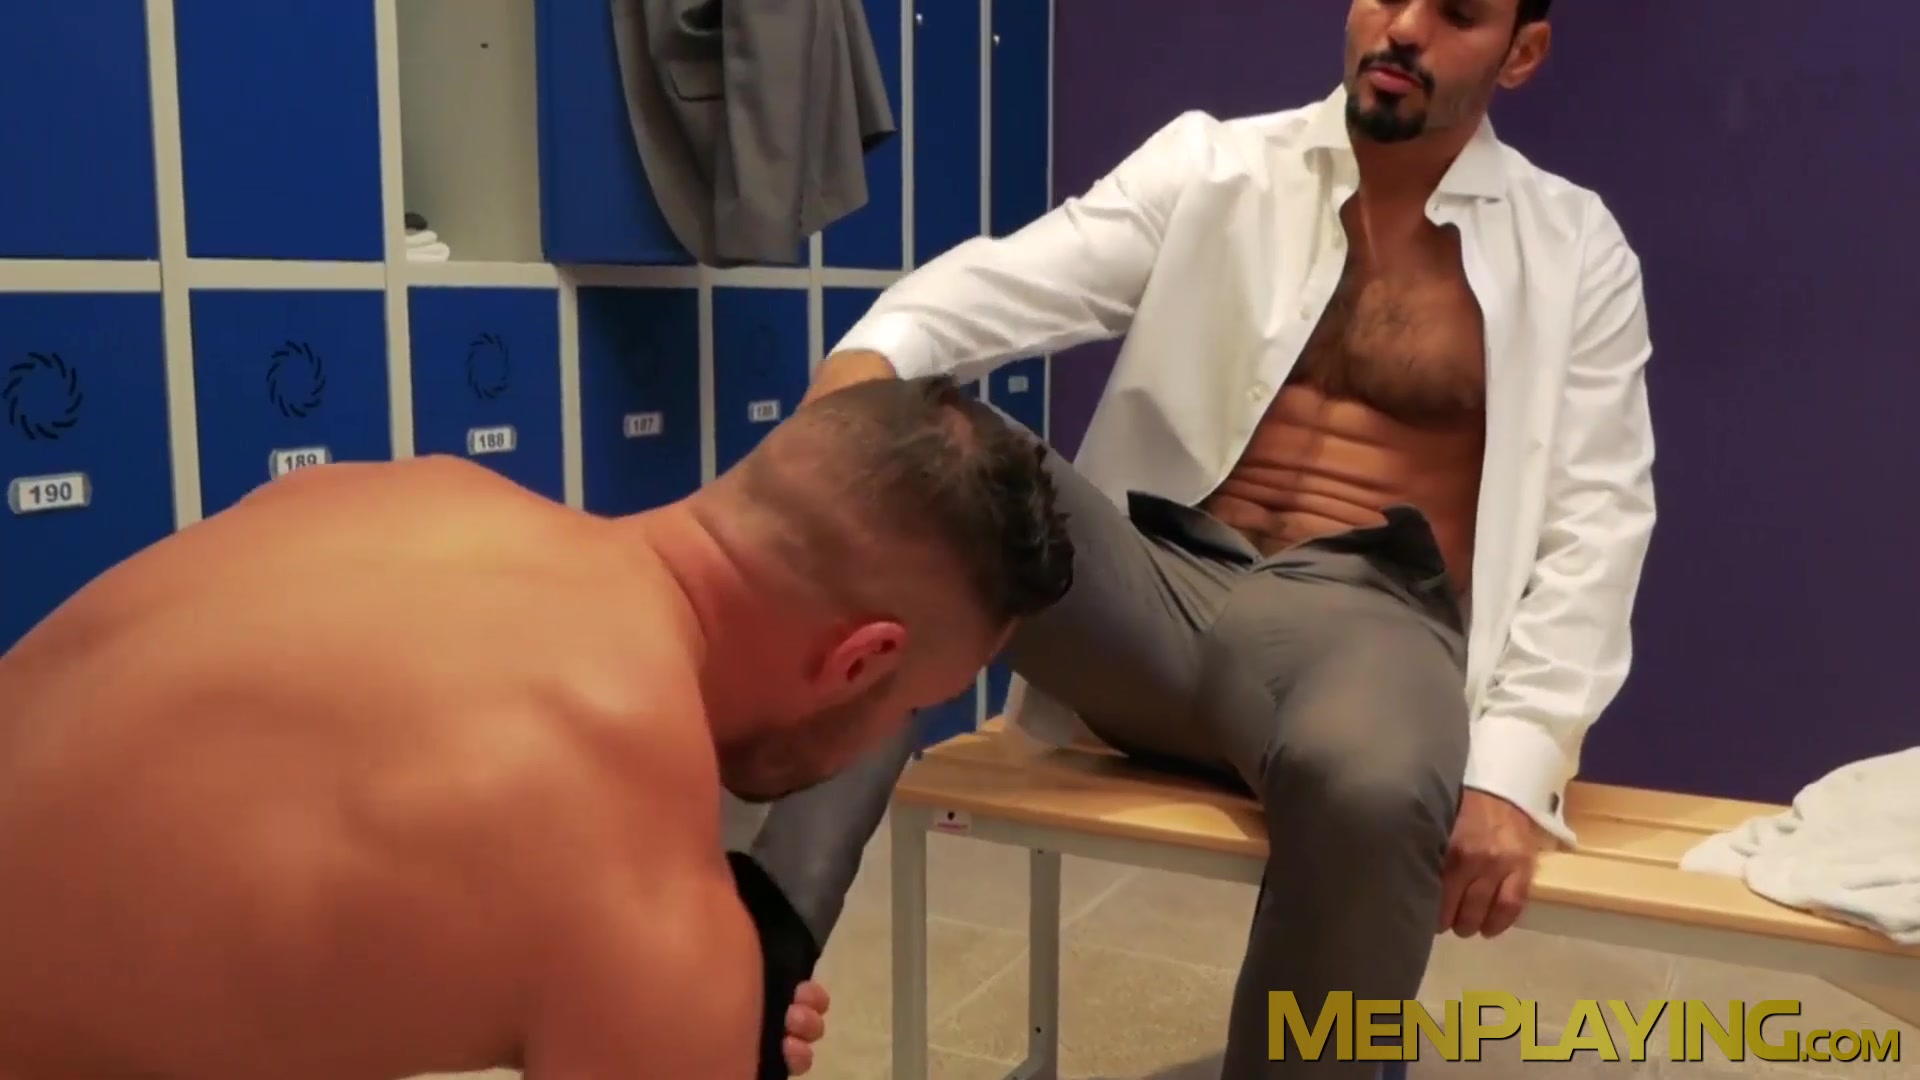 Musc.ly Porn muscly executive pounds his partner after wet cocksucking